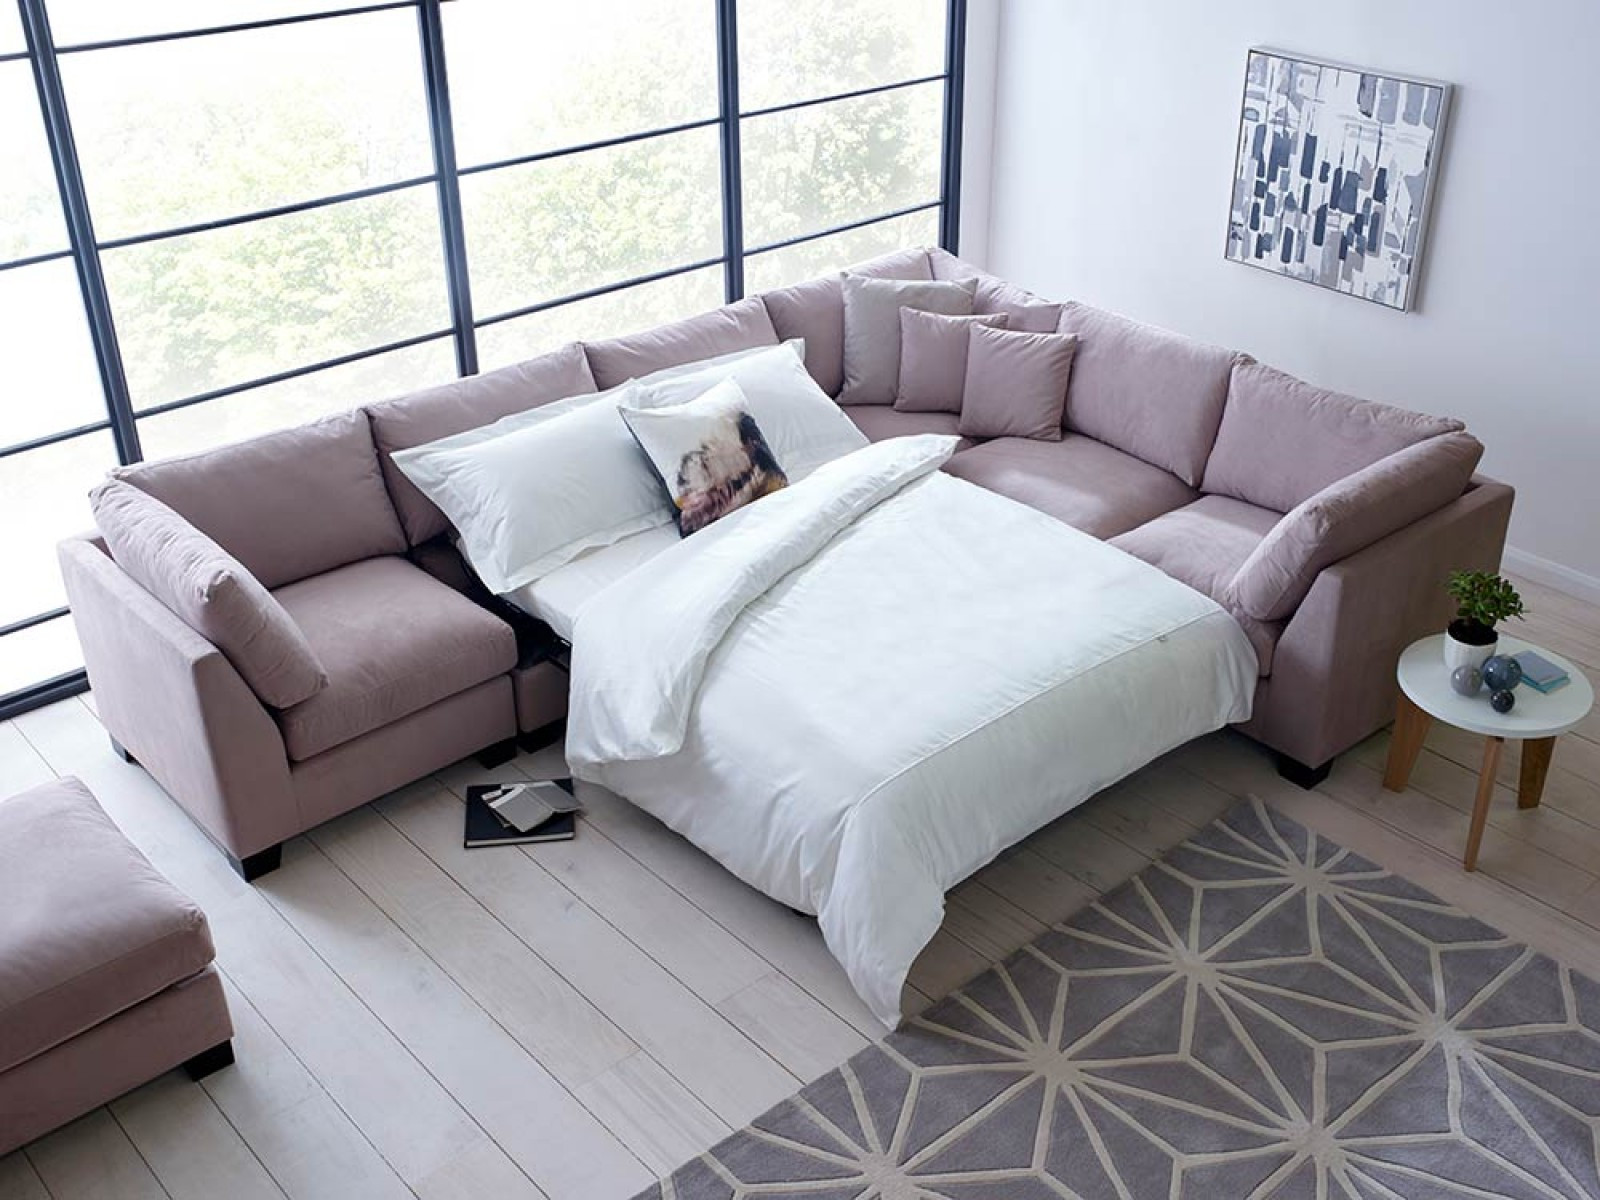 Best ideas about Corner Sofa Bed . Save or Pin Isabelle Corner Sofa Bed Sectional Now.